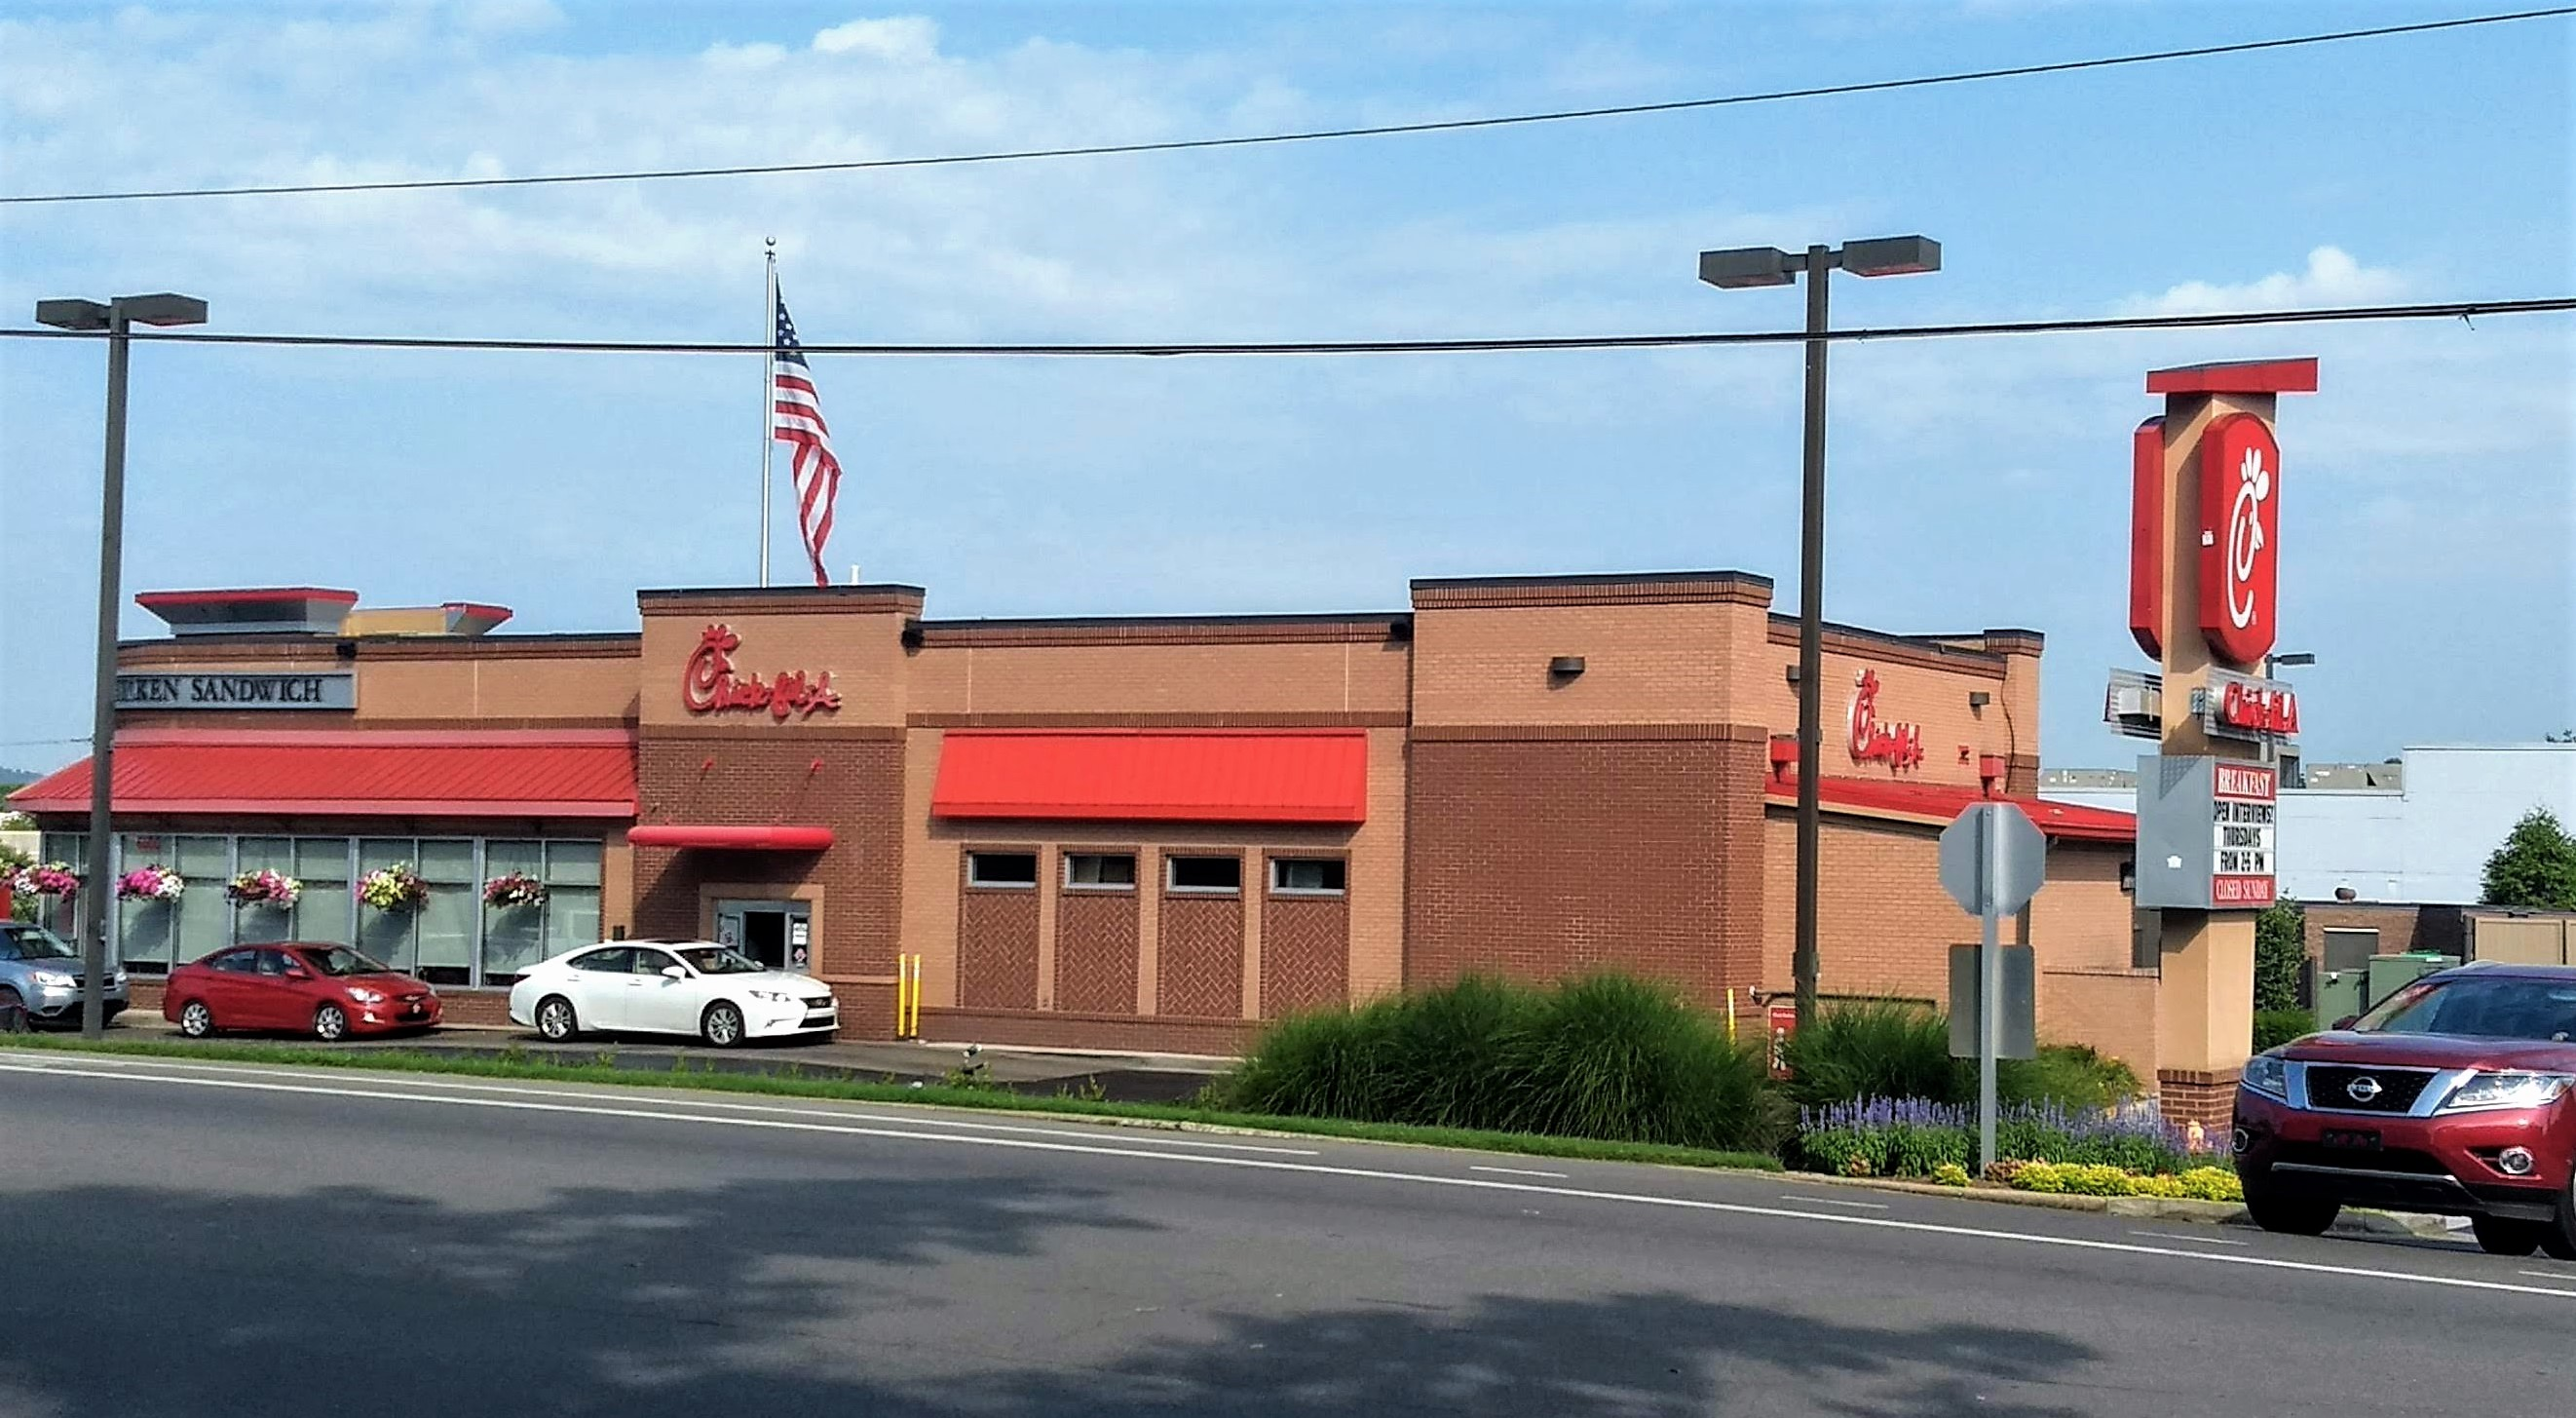 Is a wish coming true with new Chick-Fil-A in Bellevue?